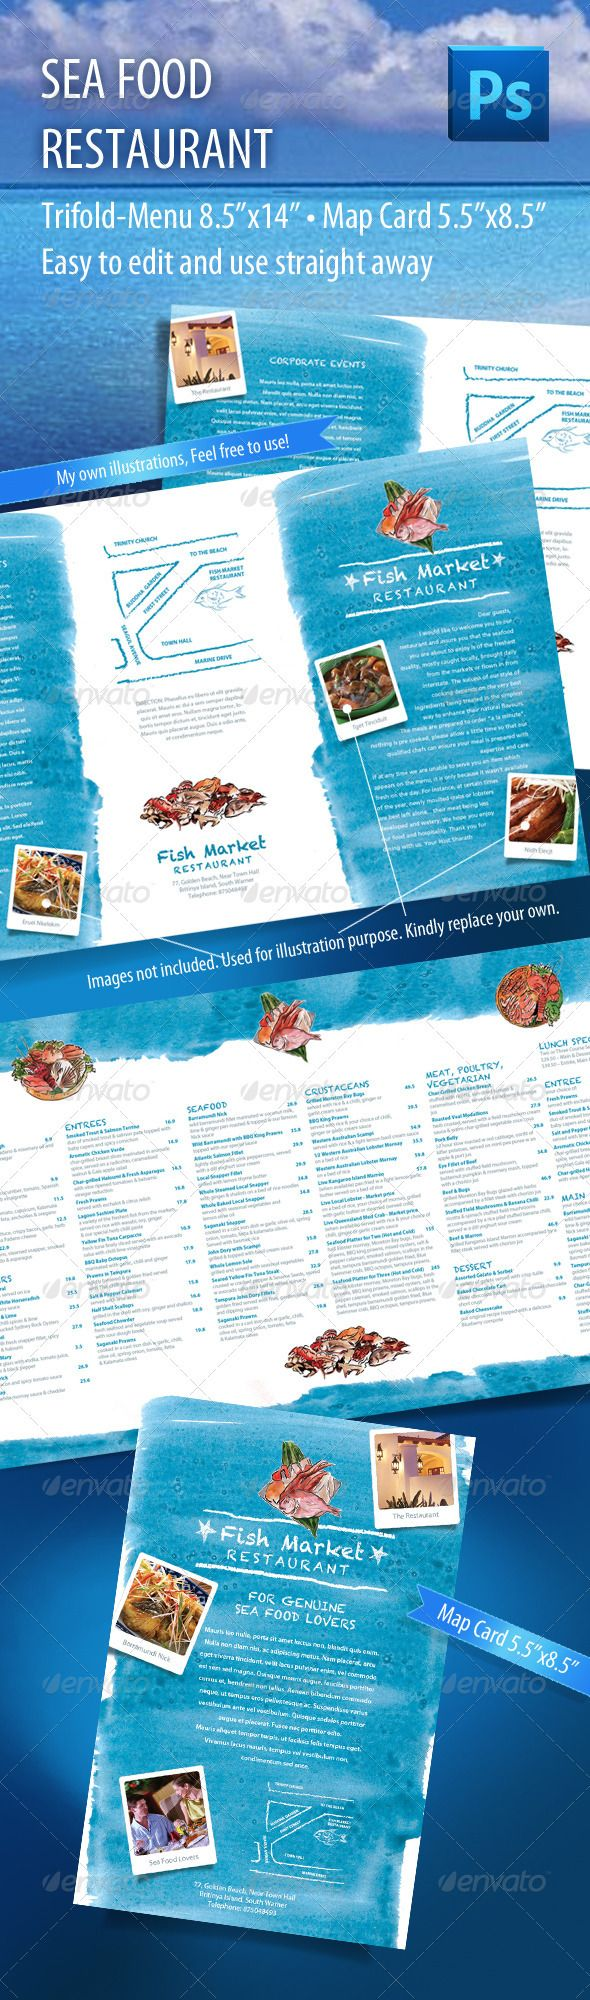 Seafood Restaurant Food Menu & Map Card Template PSD. Download here: http://graphicriver.net/item/seafood-restaurant-menu-map-card/712753?s_rank=131&ref=yinkira